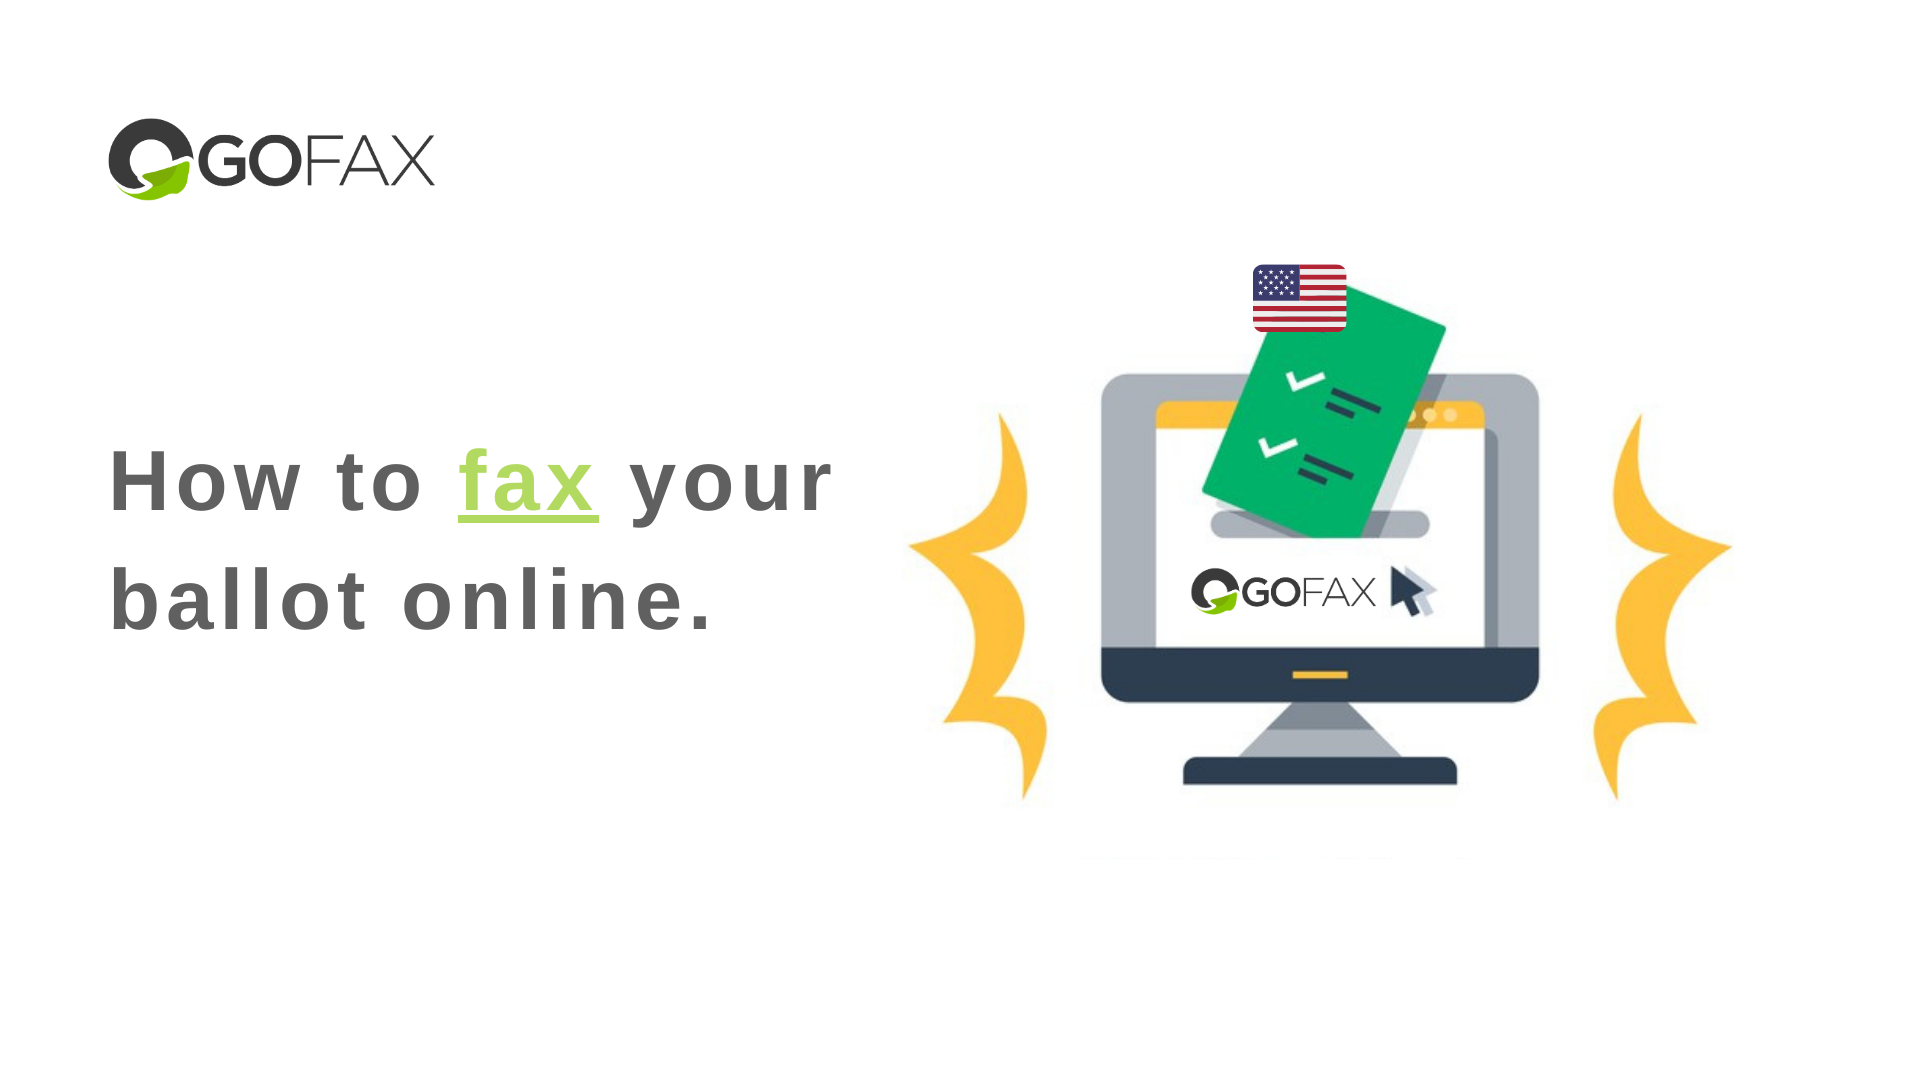 fax-your-ballot-online-to-the-us-with-gofax